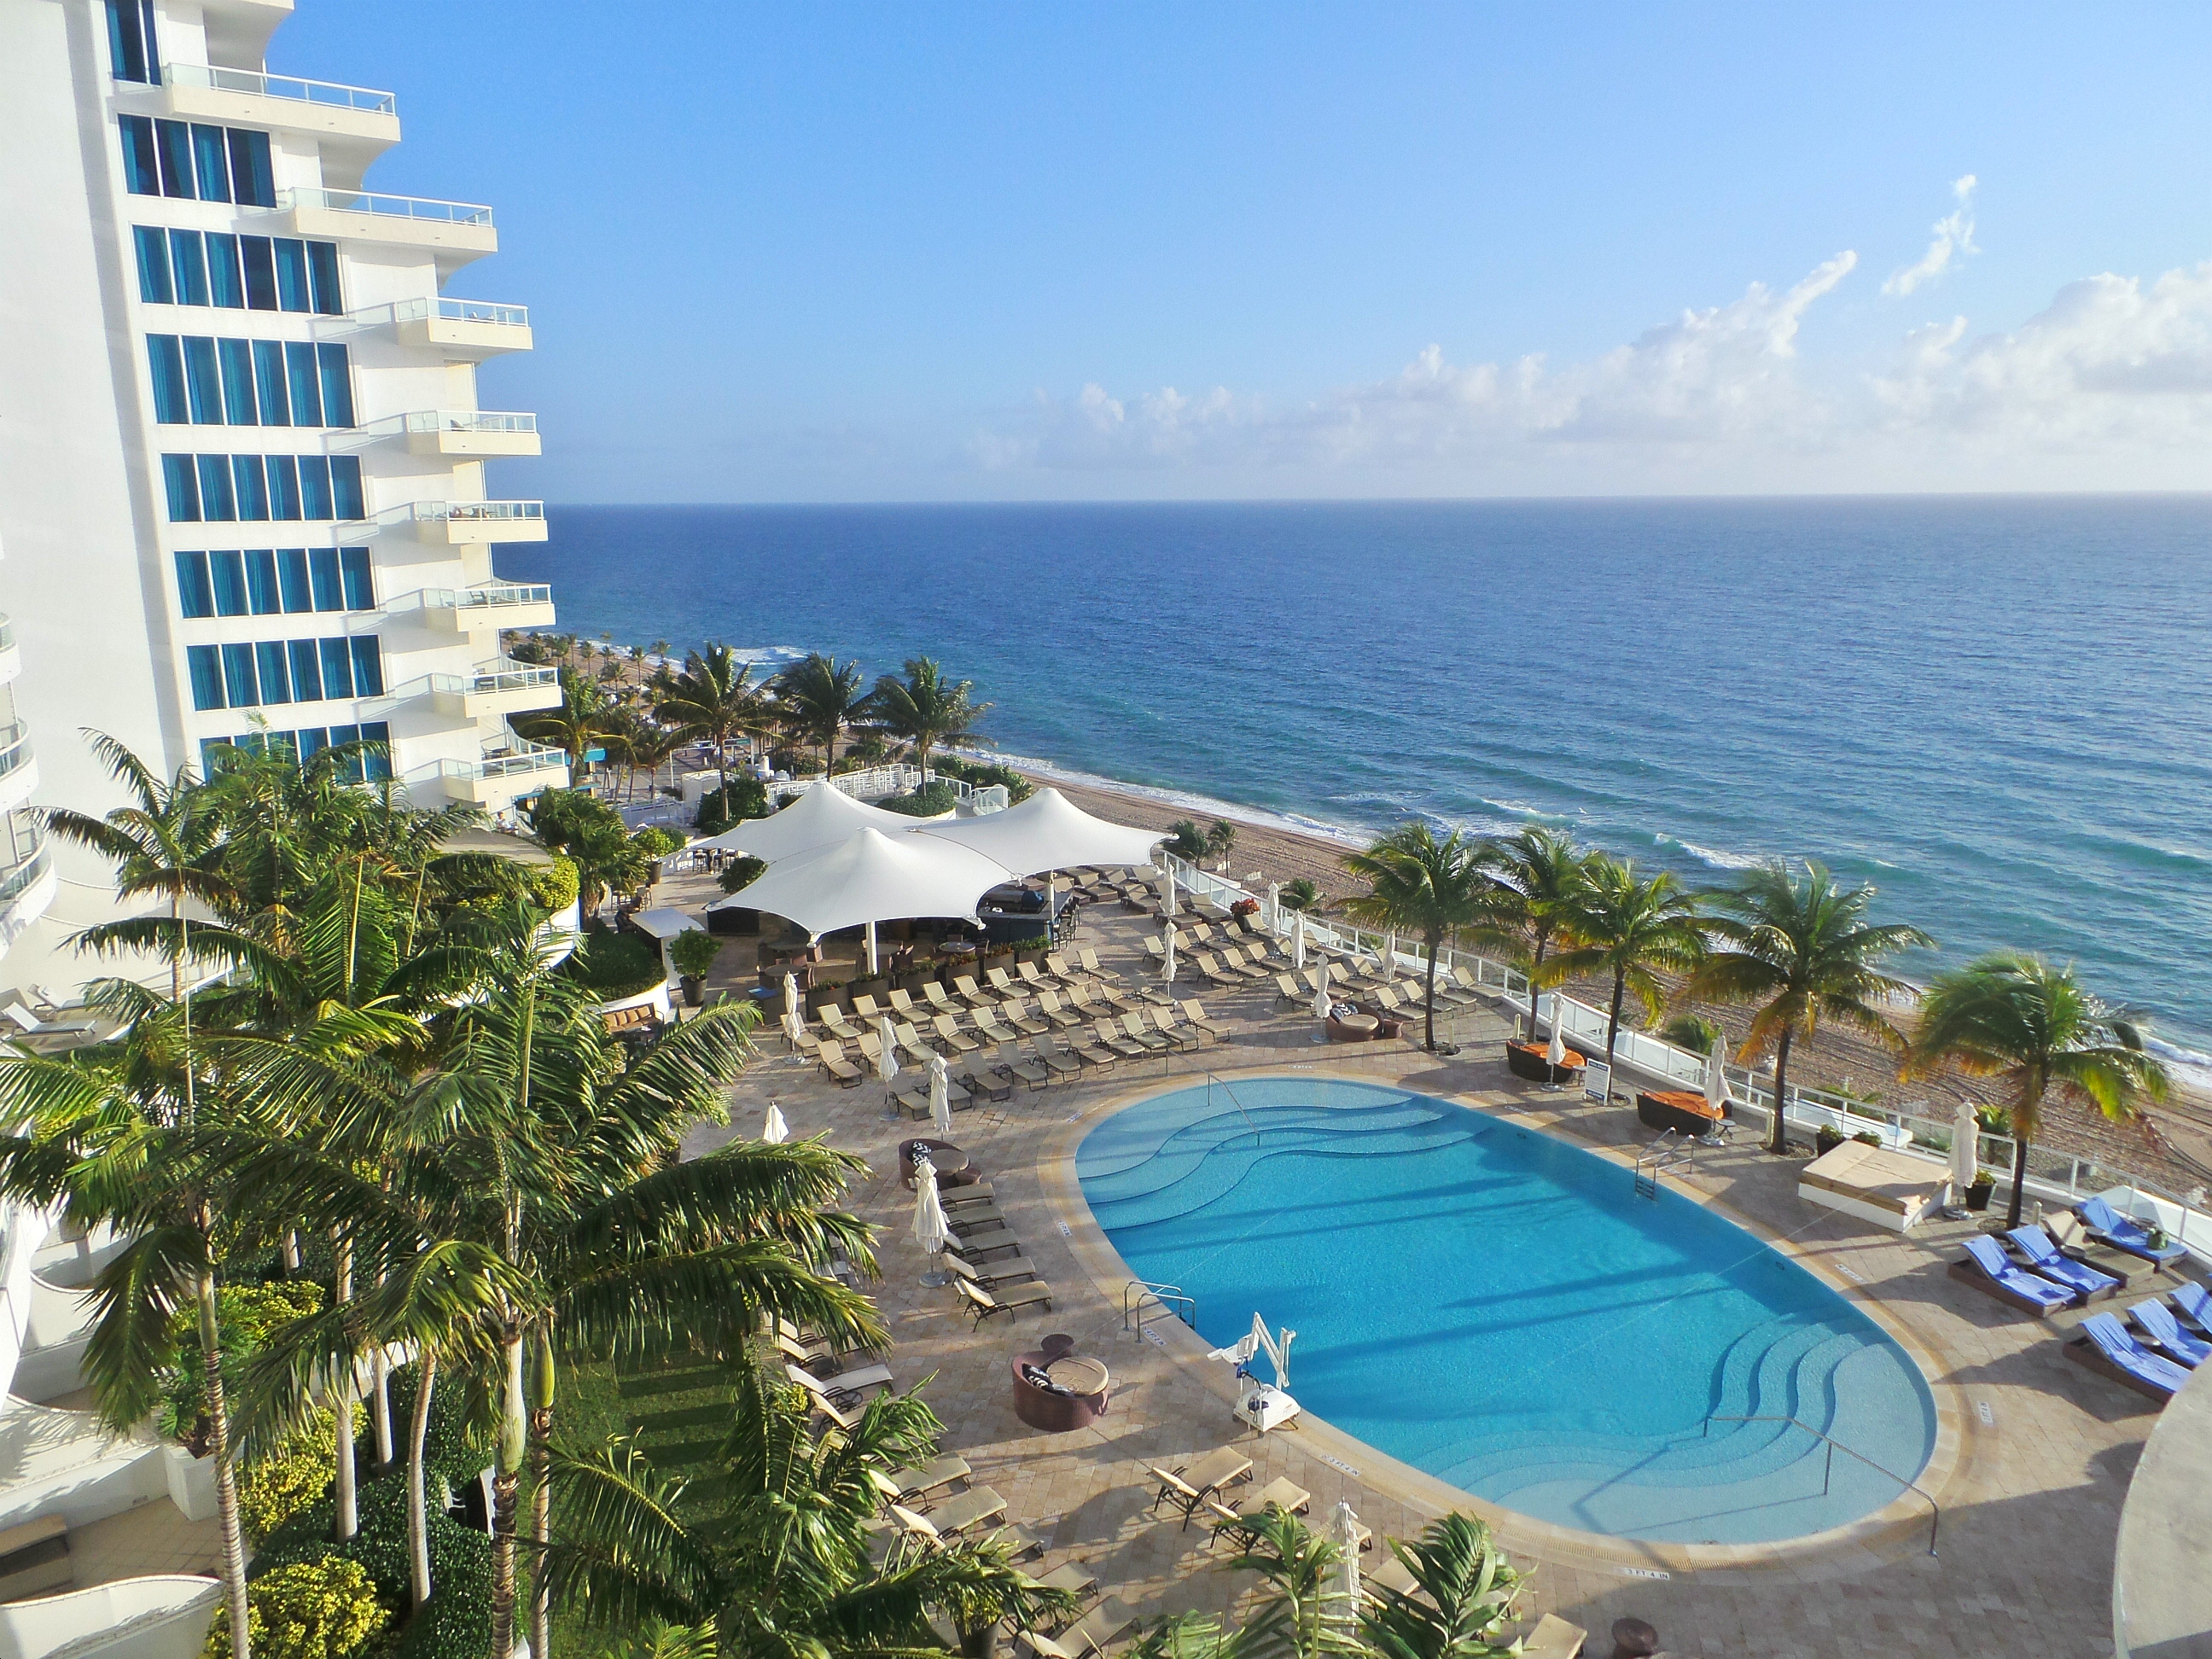 View of the pool at The Ritz-Carlton Fort Lauderdale.